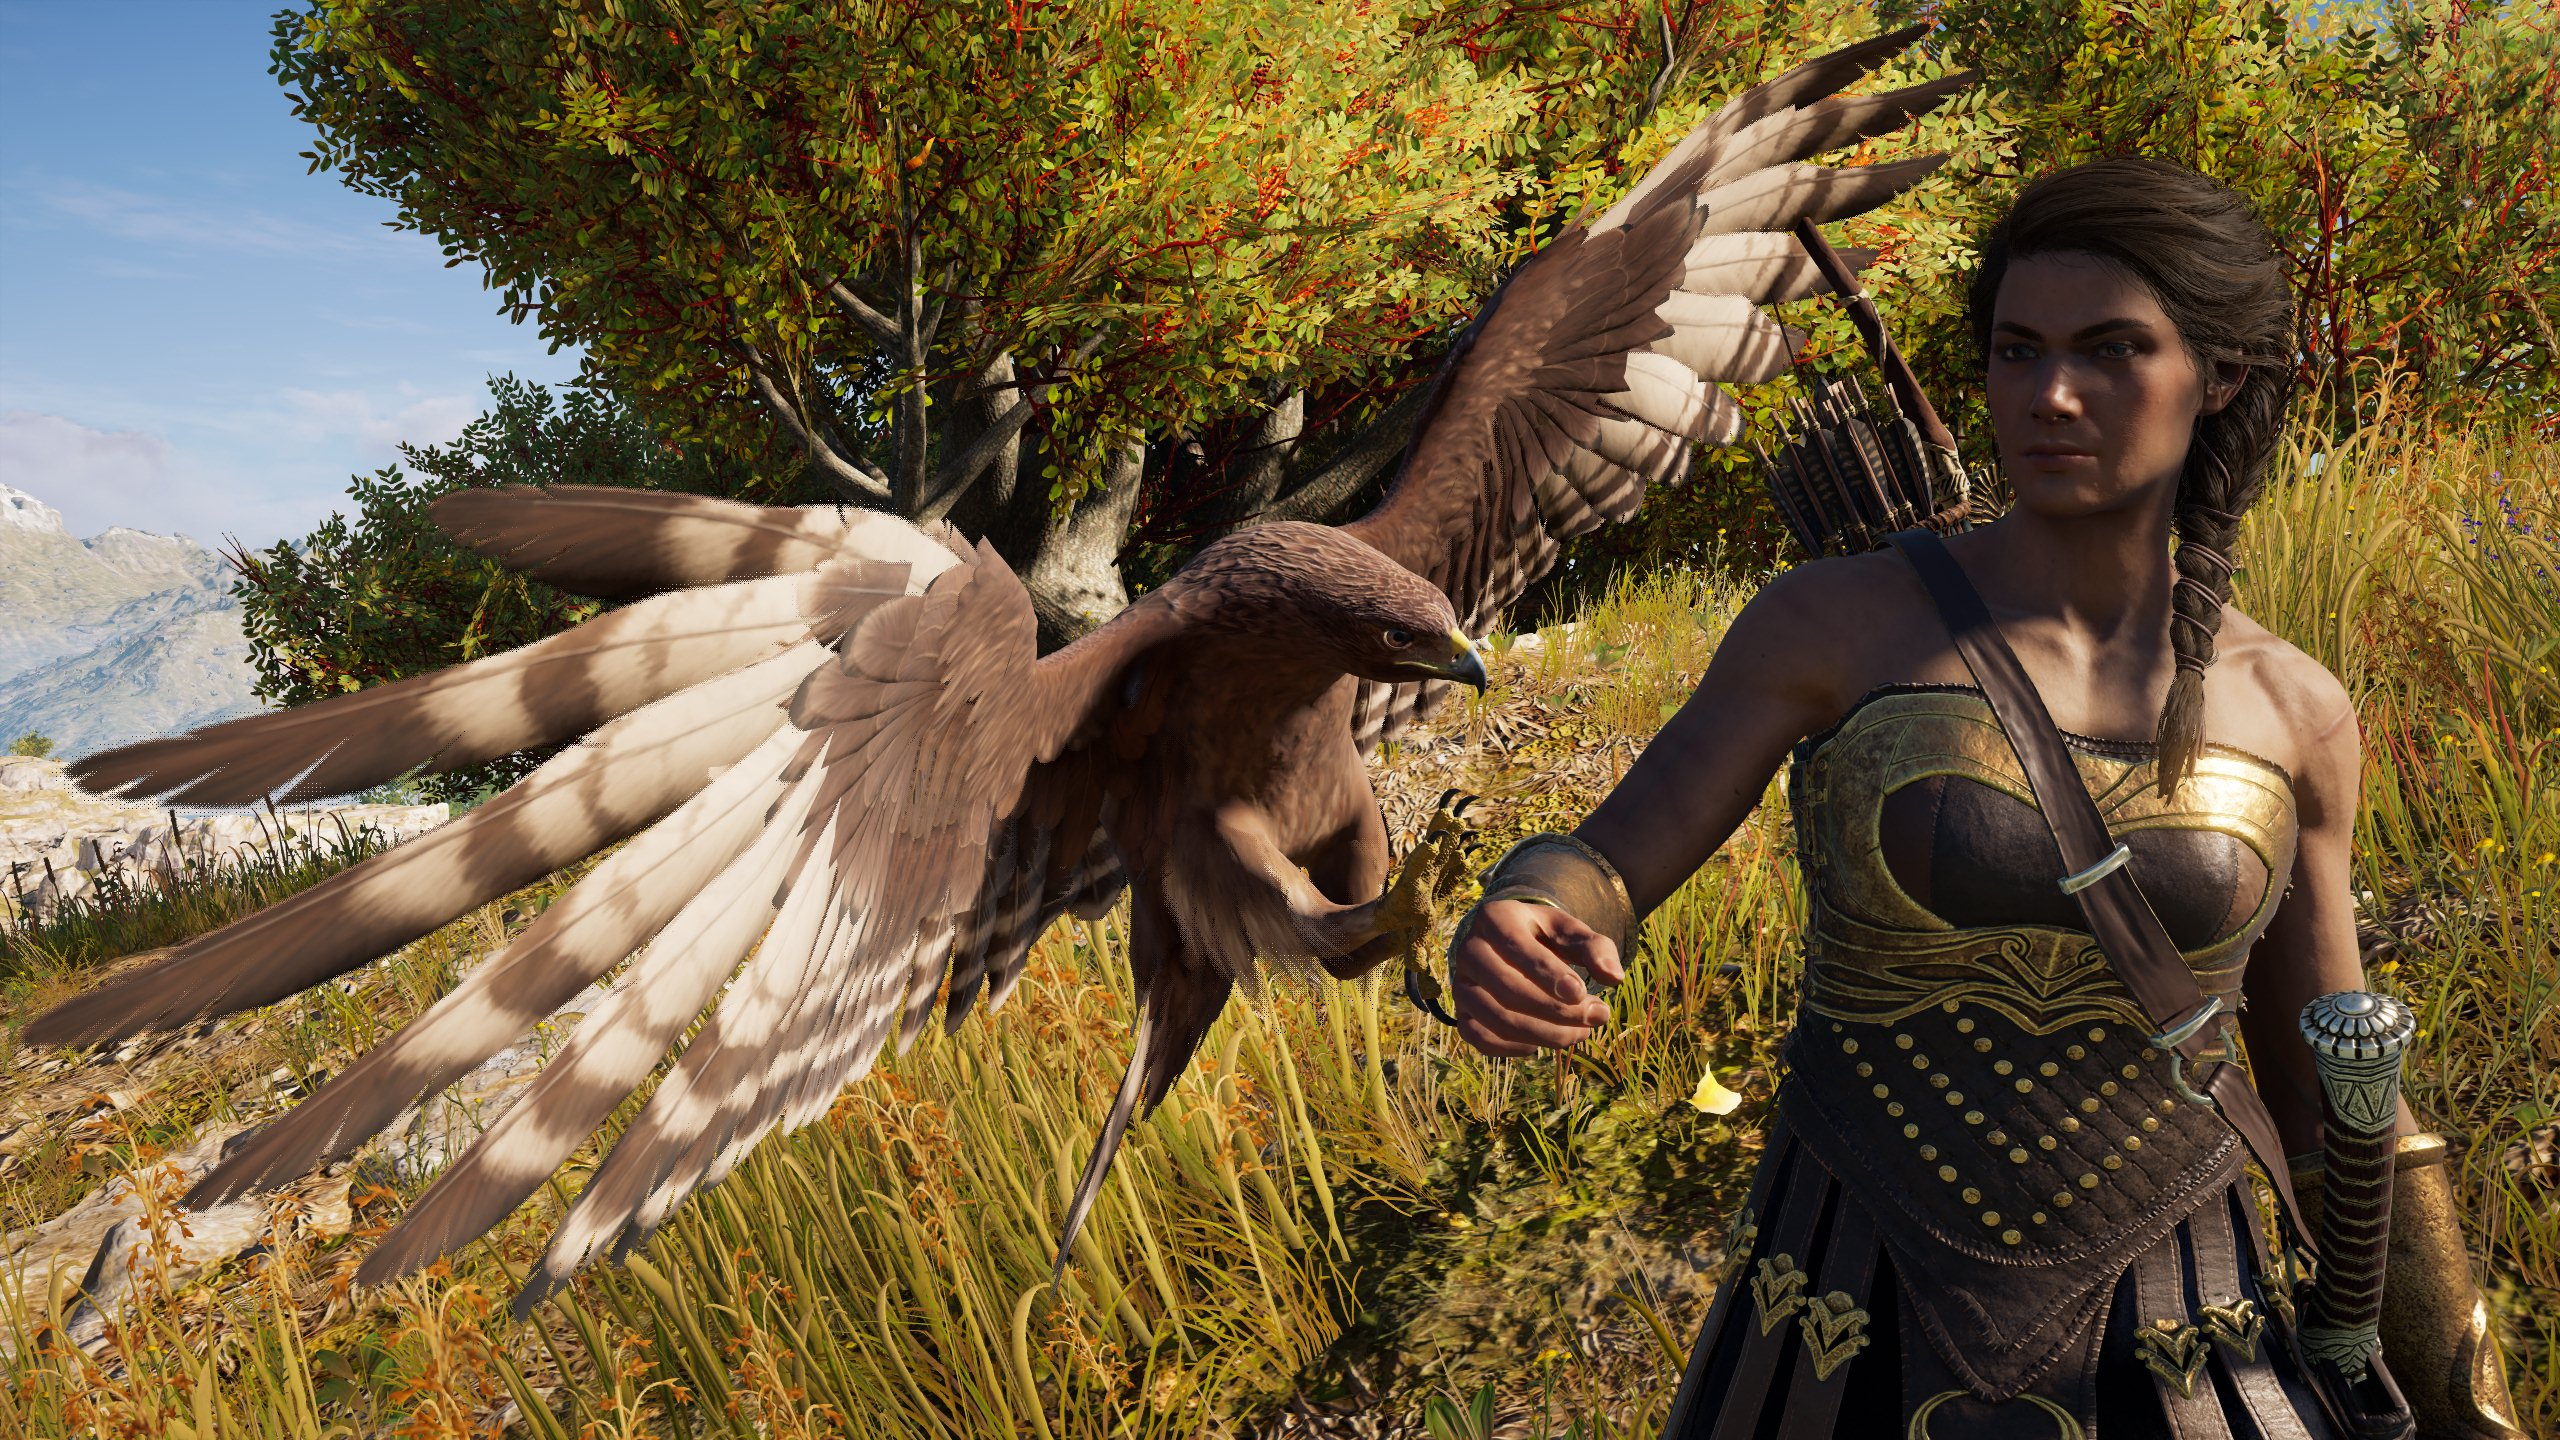 Battle at Assassins Creed Odyssey Nexus - Mods and Community